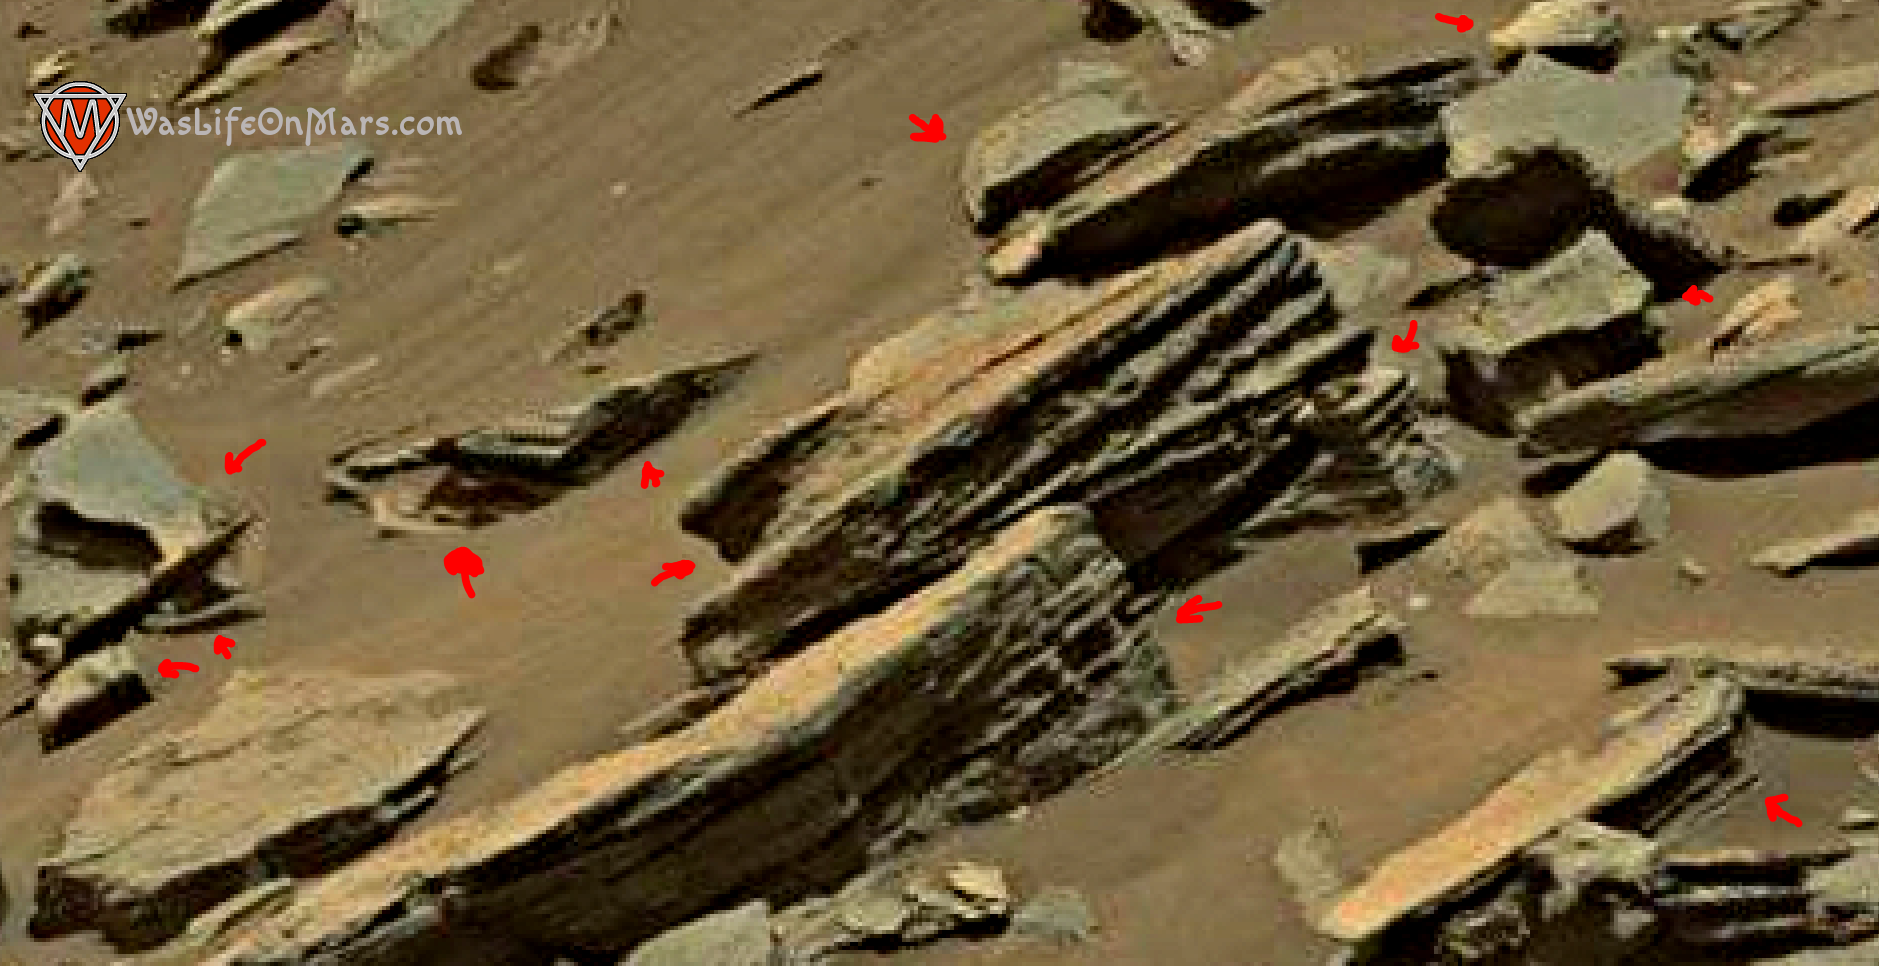 mars-sol-1455-anomaly-artifacts-1a-was-life-on-mars